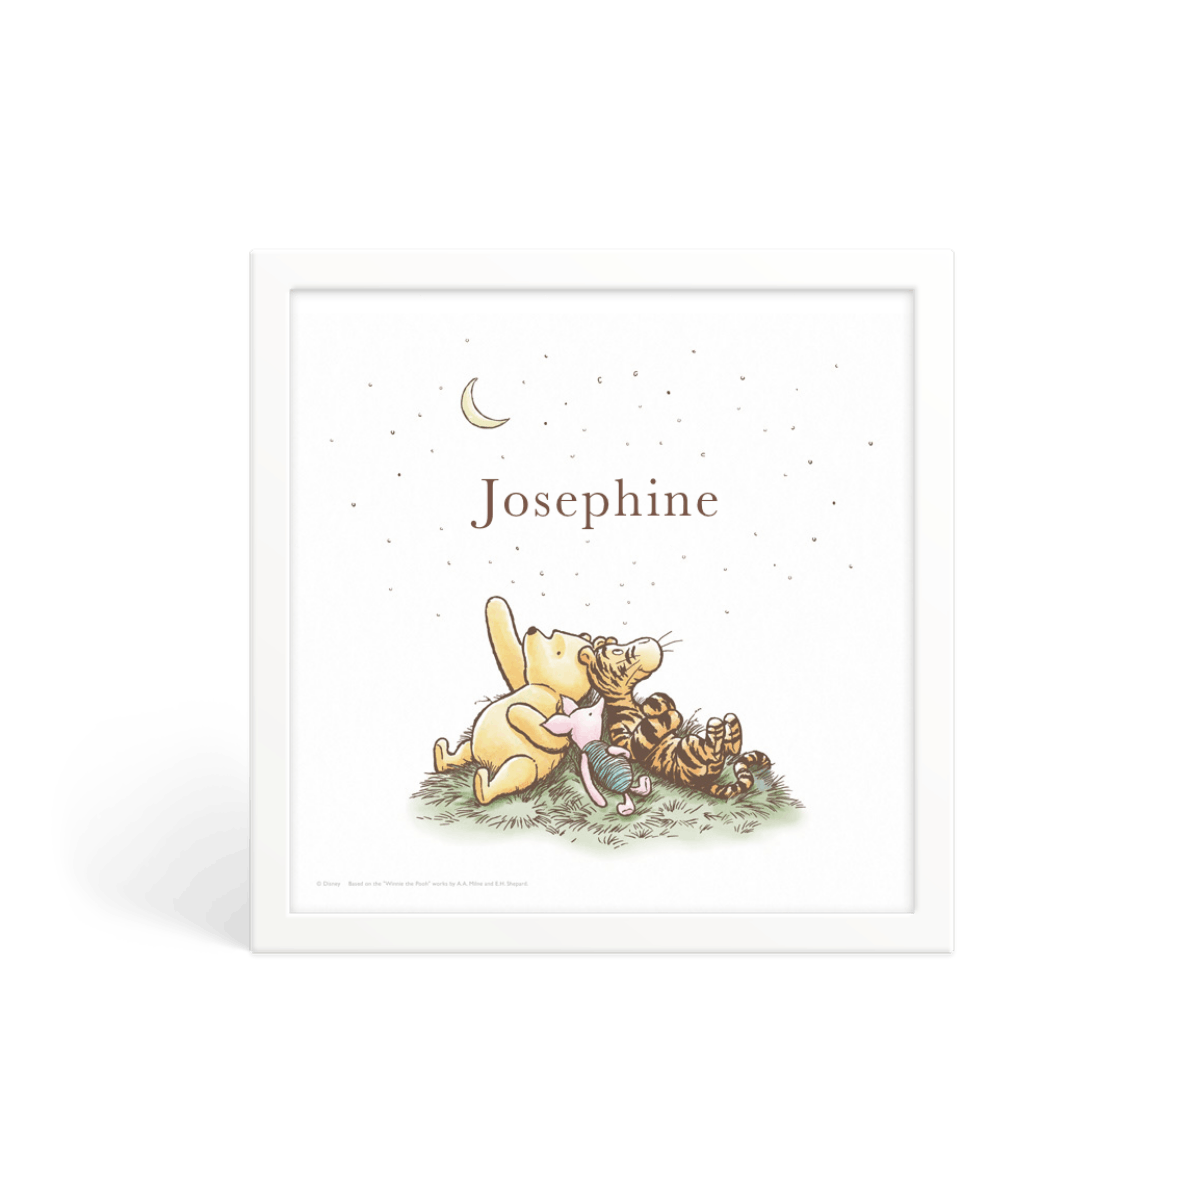 Https%3a%2f%2fwww.papier.com%2fproduct image%2f88006%2f71%2fclassic pooh stargazing 21890 front 1568647314.png?ixlib=rb 1.1